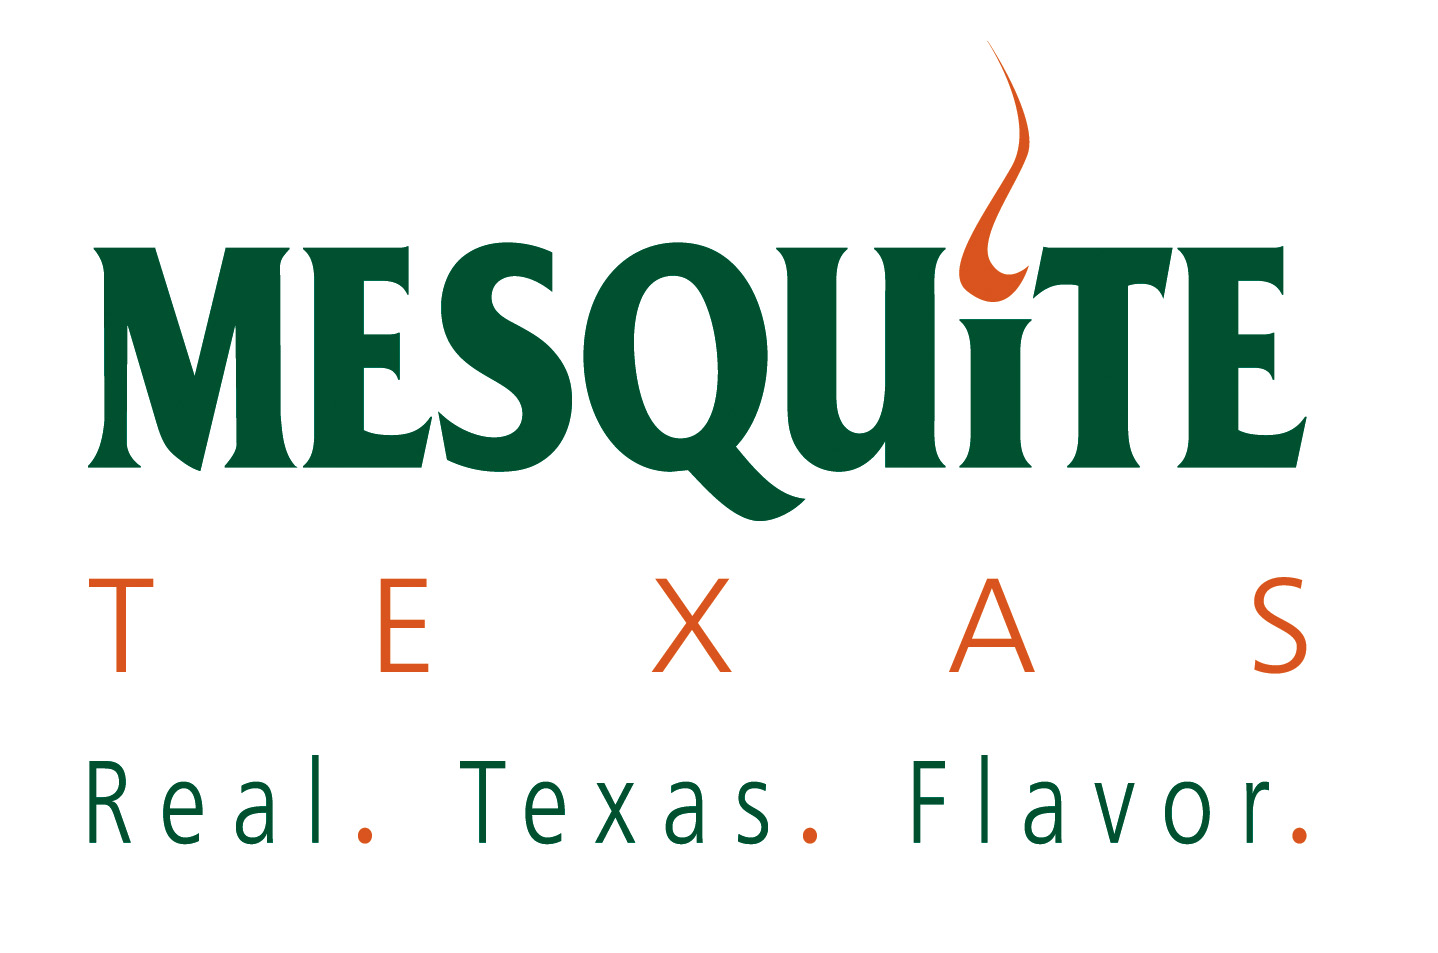 City of Mesquite